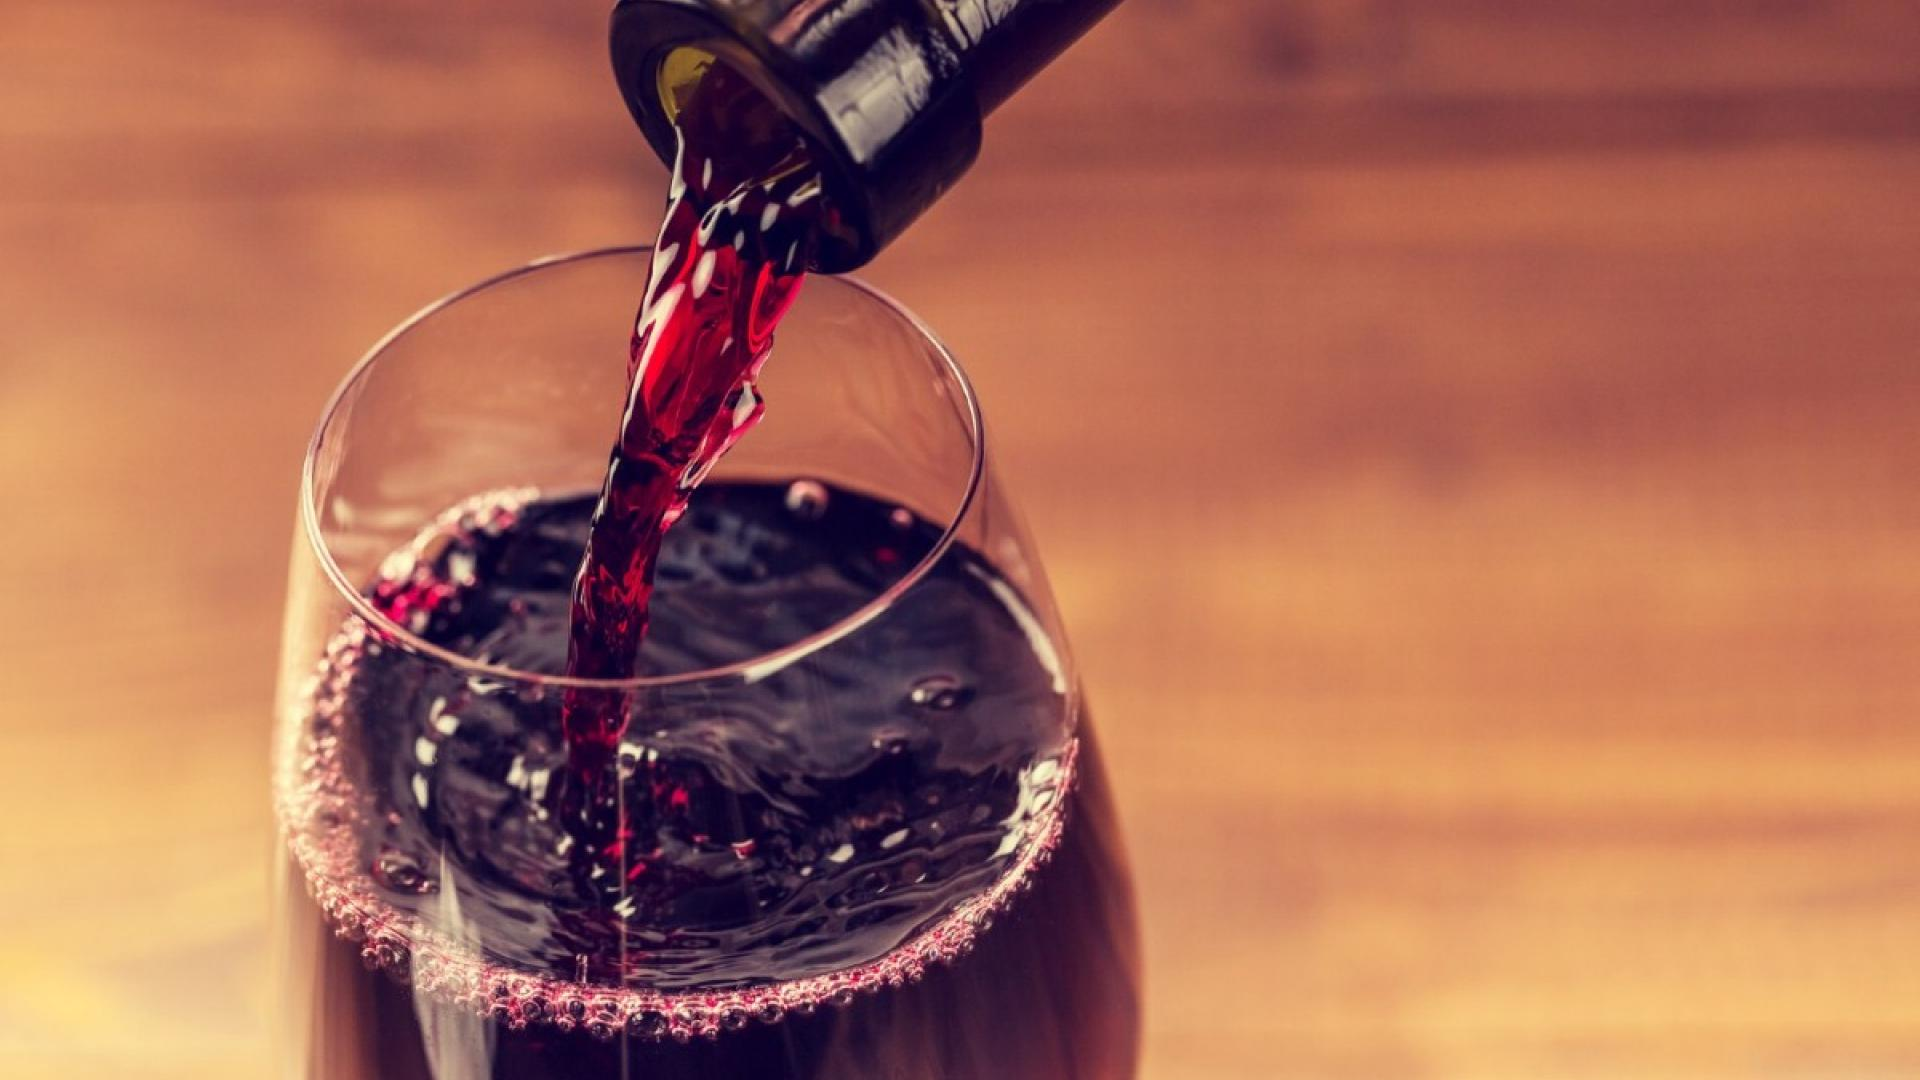 A small drink a day could reduce stroke risk